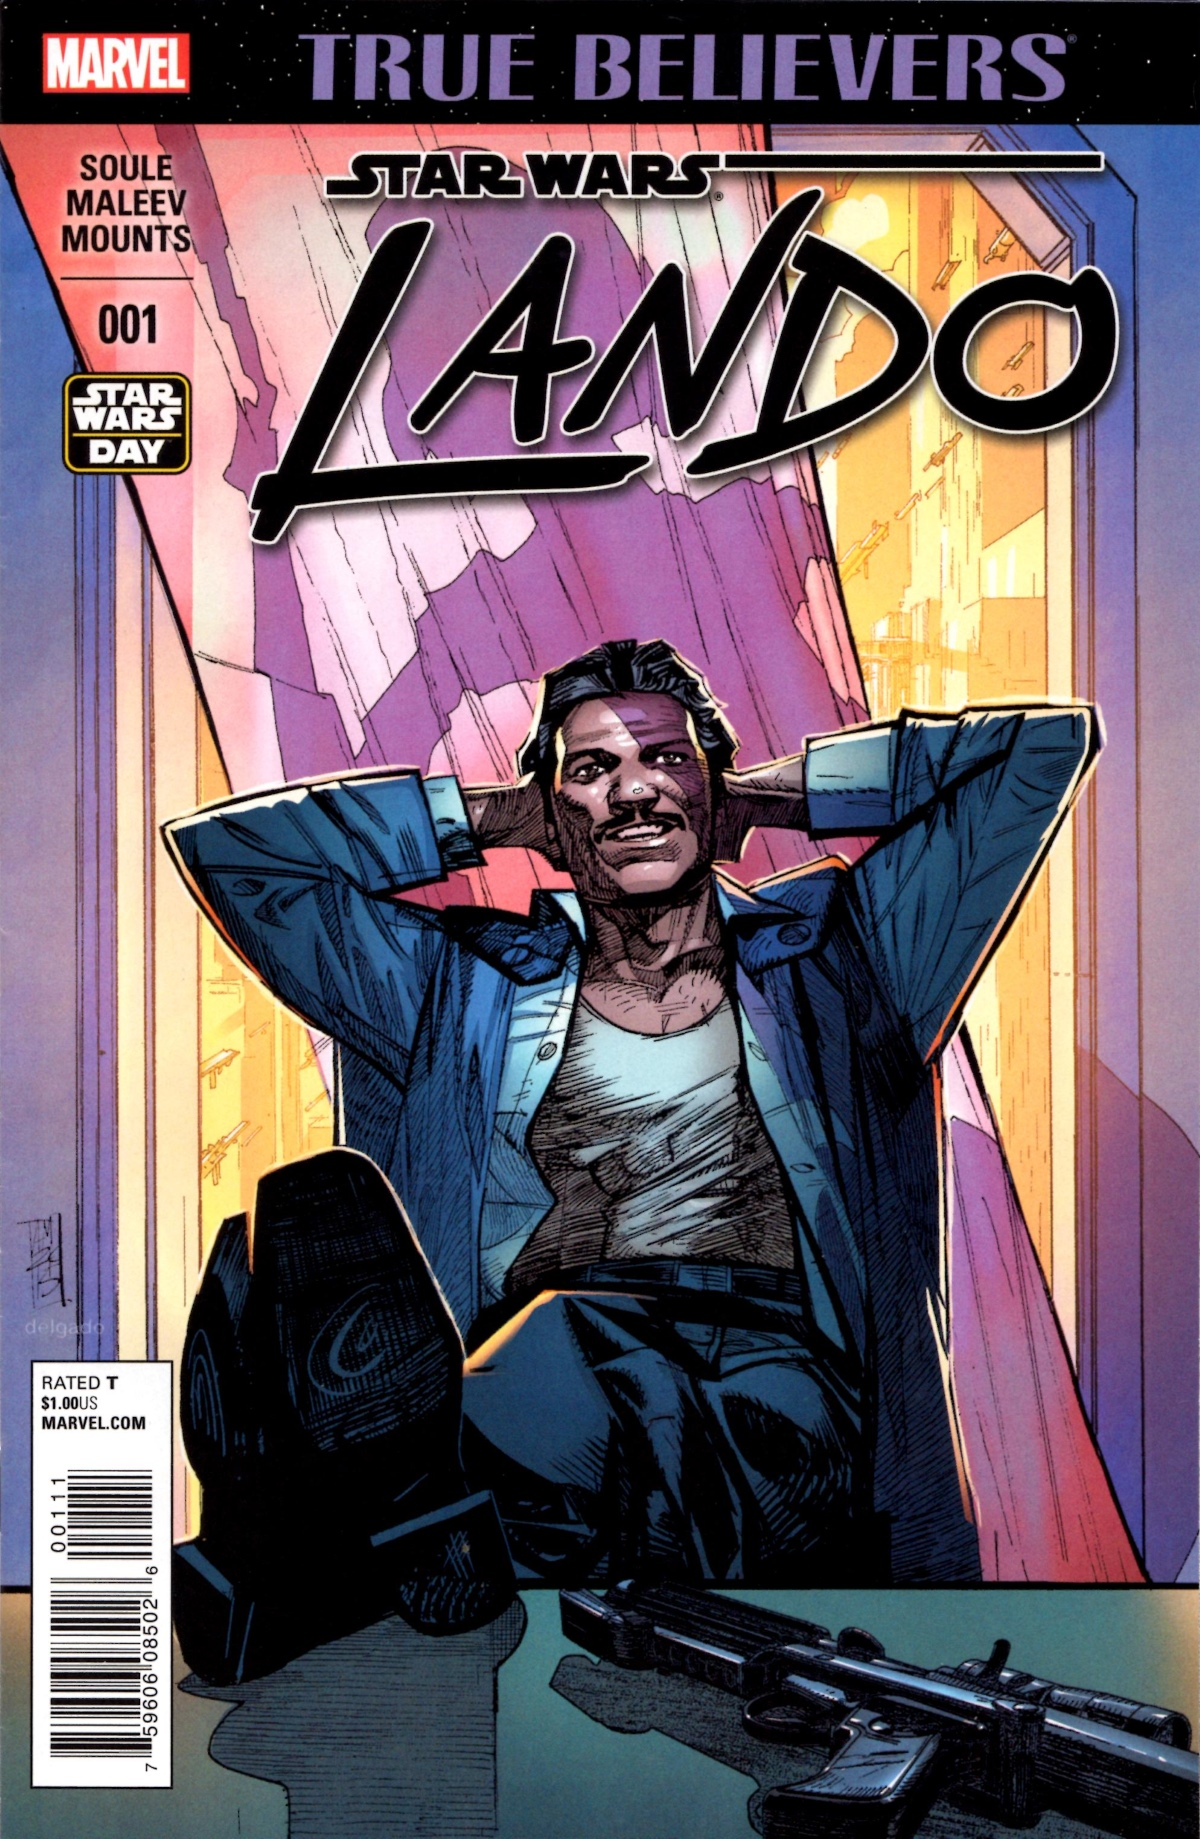 True Believers: Lando #1 (04.05.2016)